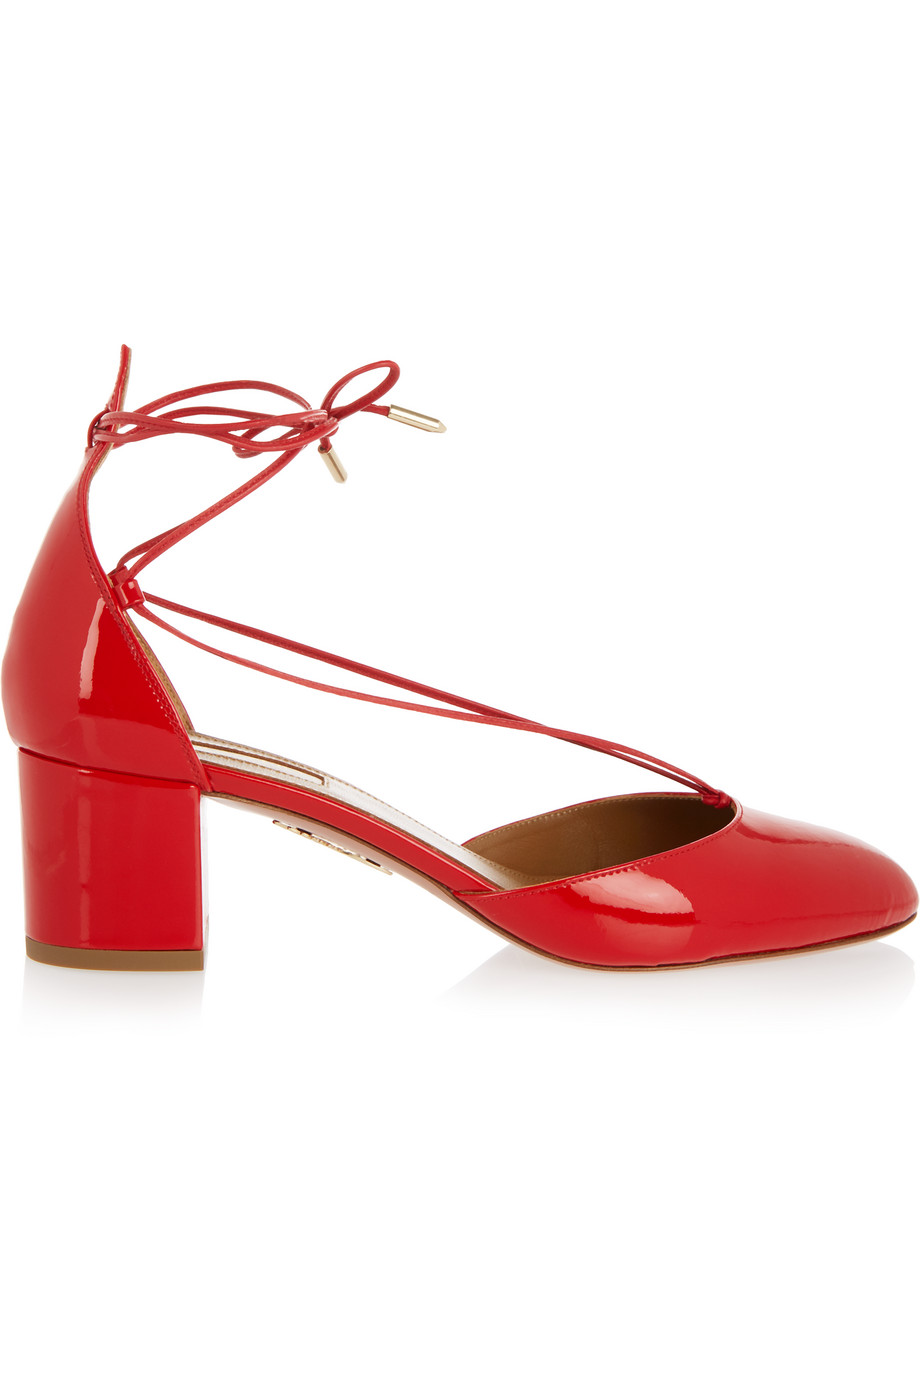 Aquazzura Alexa Patent-Leather Pumps, Red, Women's US Size: 10, Size: 40.5